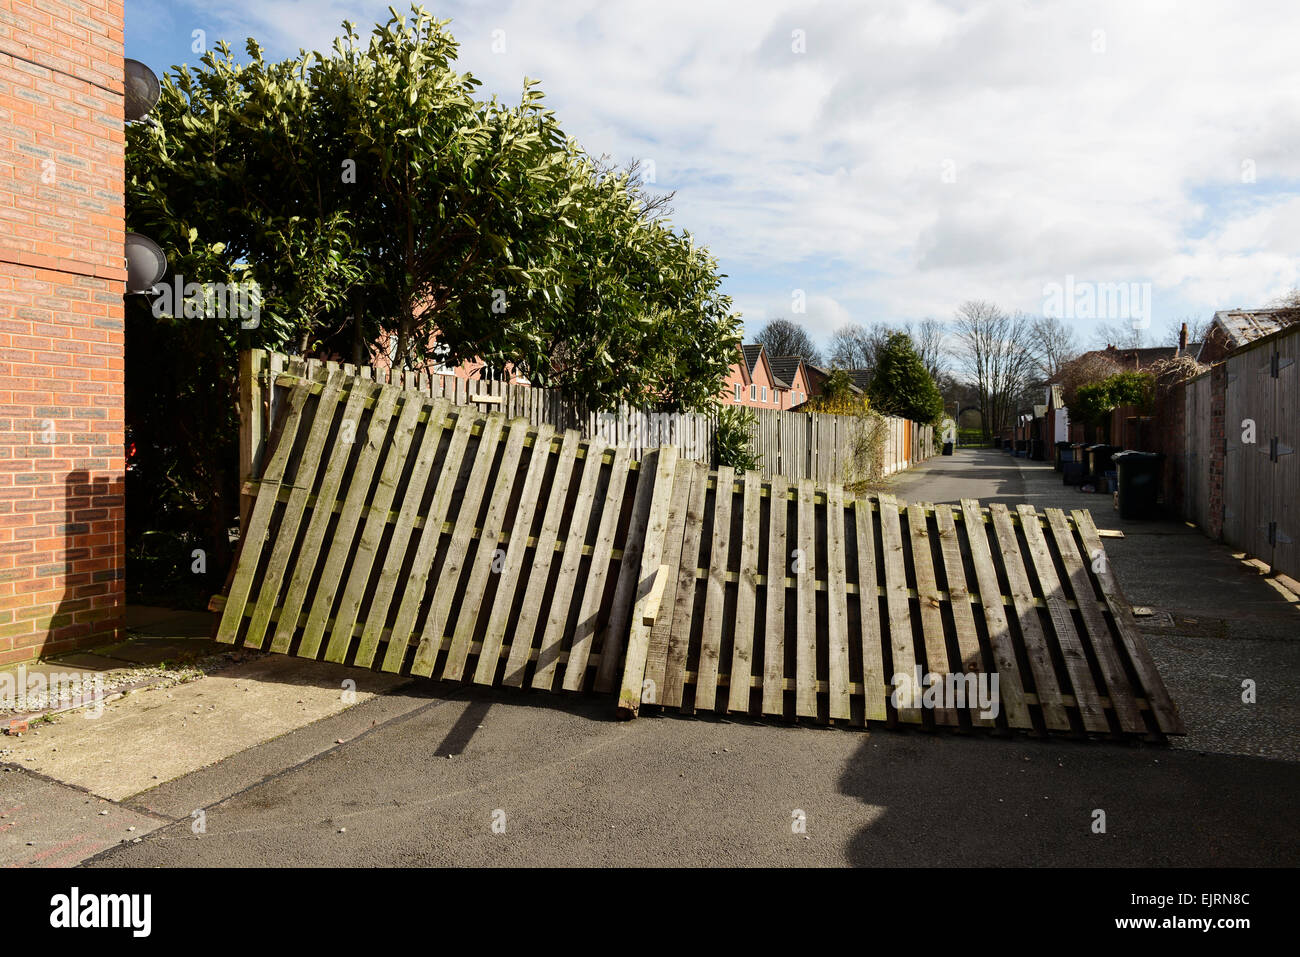 Chester, Cheshire, UK. 31st March, 2015. UK Weather: Very strong winds have damaged large wooden fence panels. Credit: Stock Photo